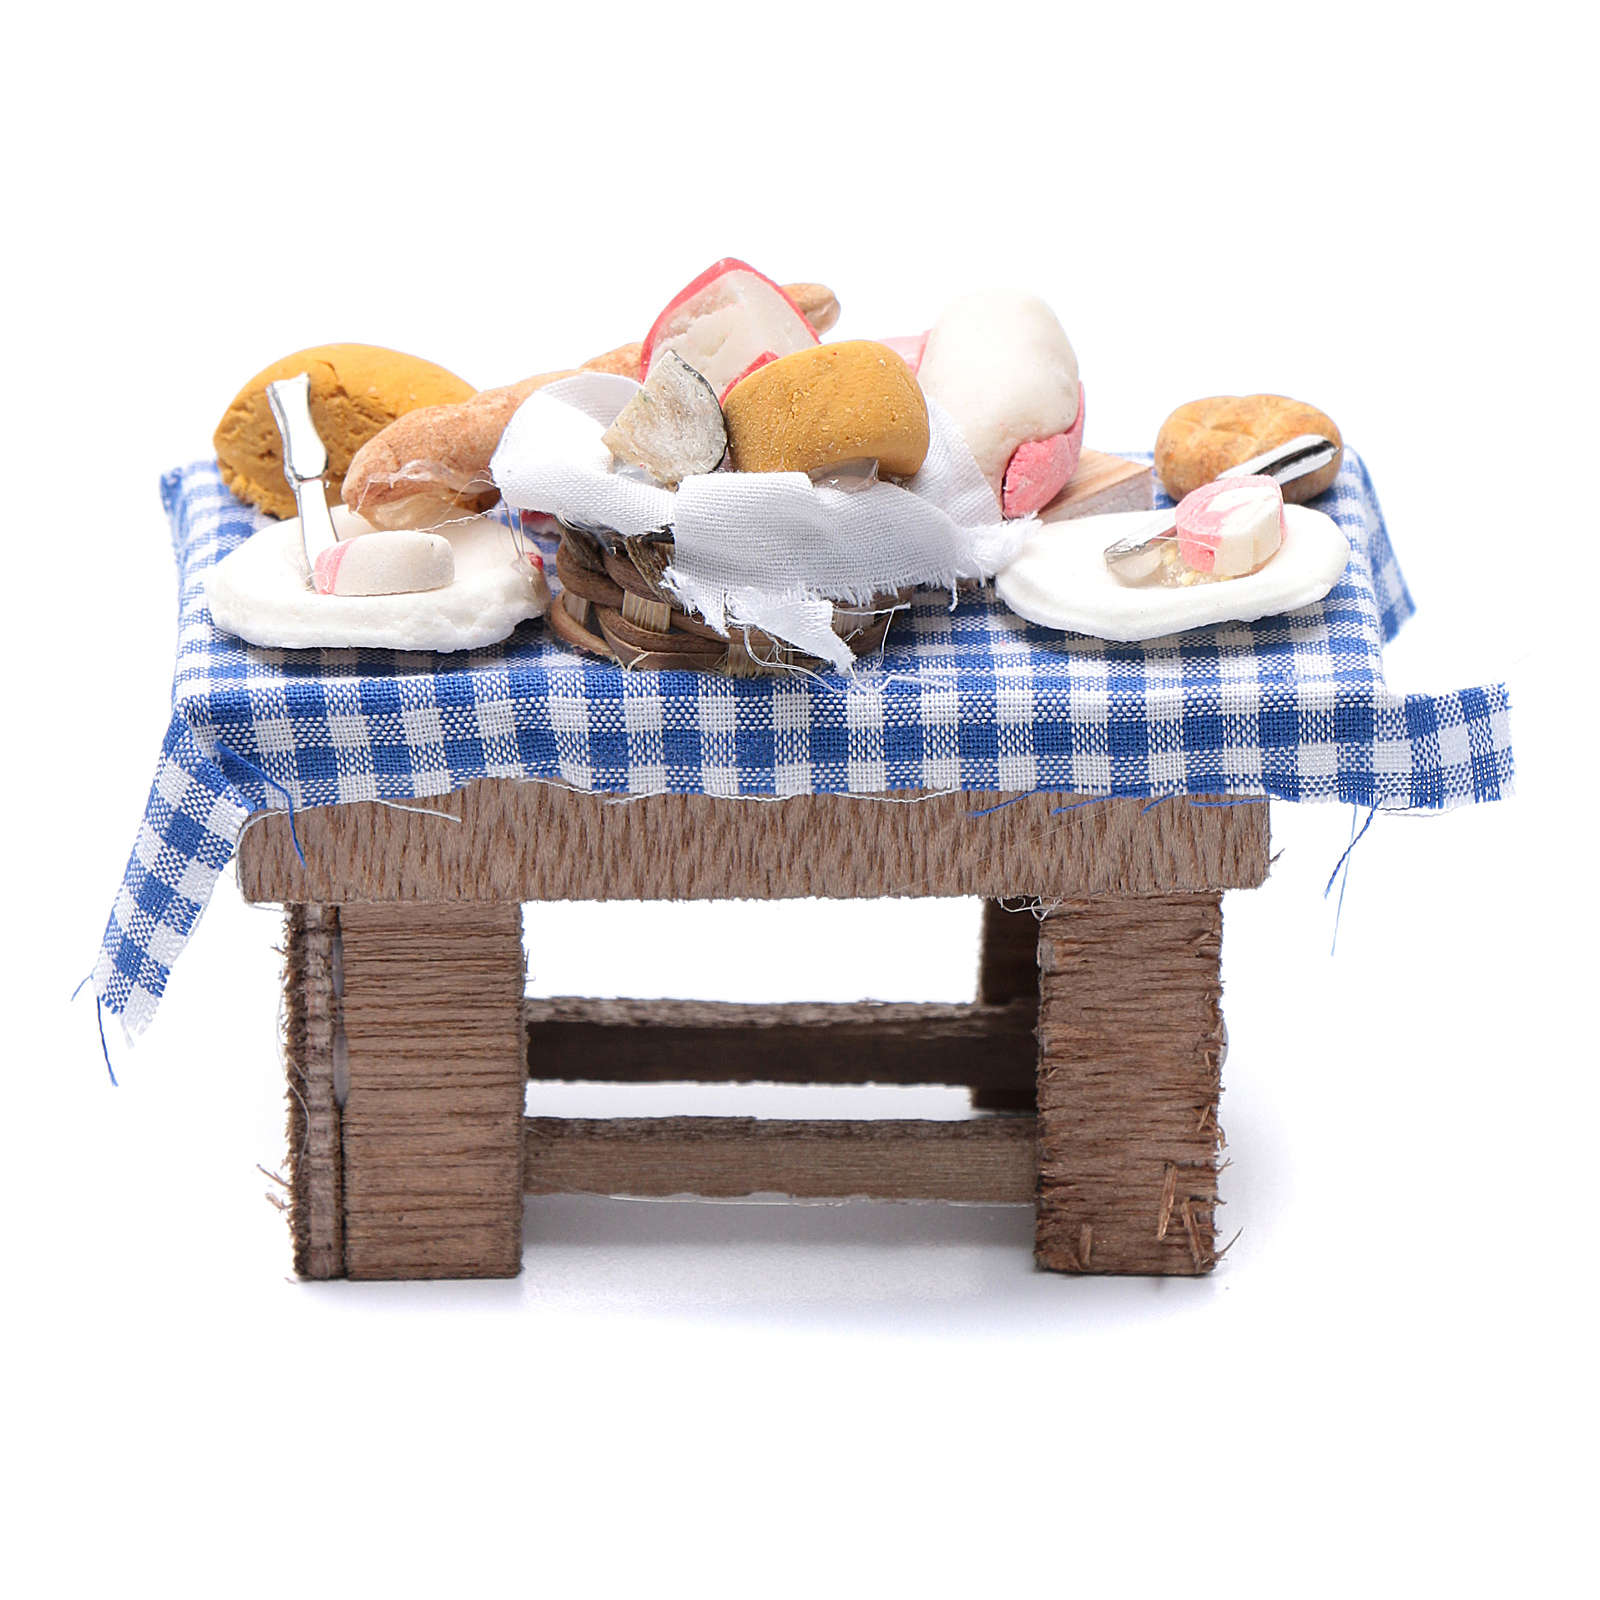 Neapolitan nativity scene table with cheese and meat 10x10x5 cm 4